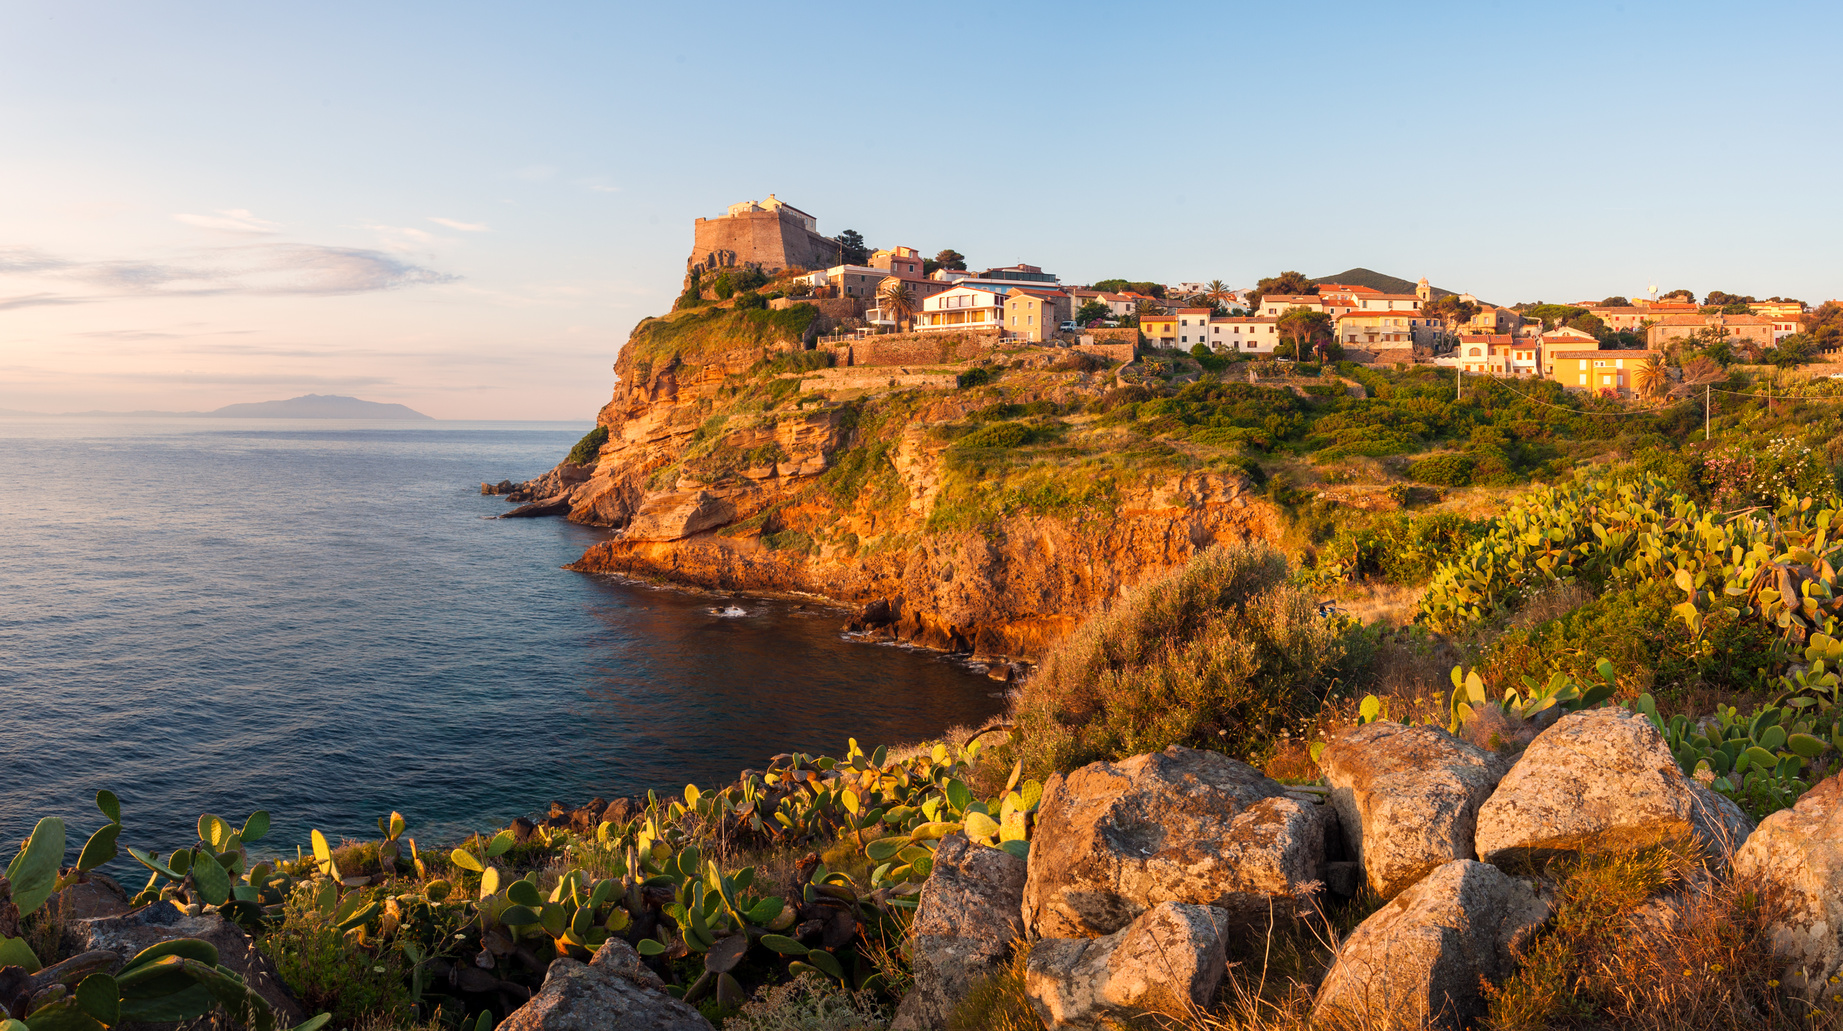 Panorama of Capraia city on the rock of Isola di Capraia island